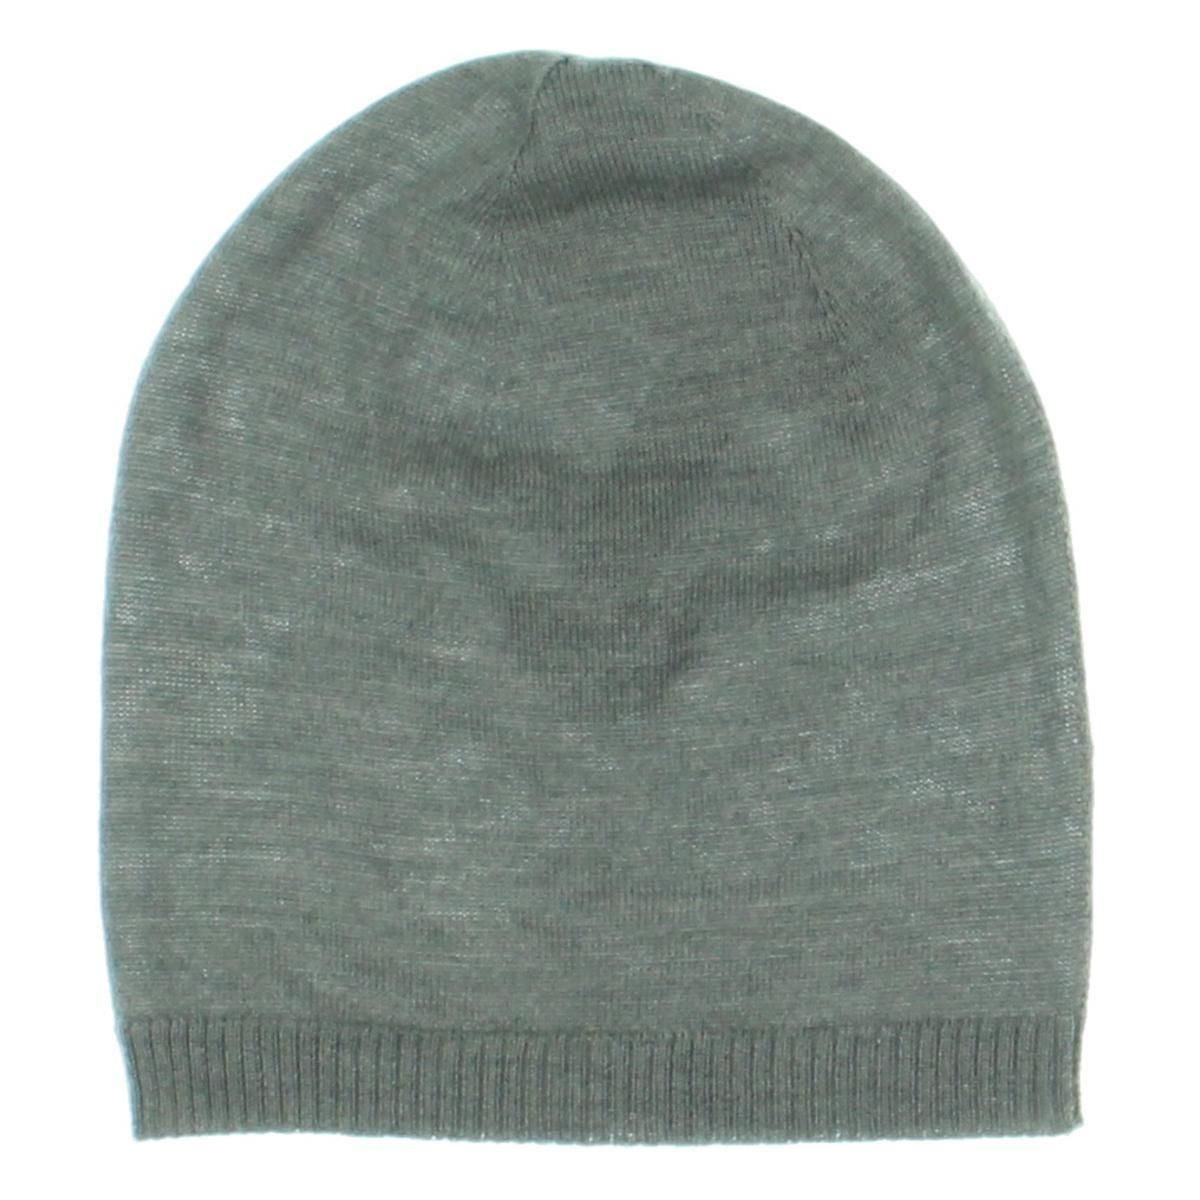 Eileen Fisher Womens Merino Wool Ribbed Trim Beanie Hat